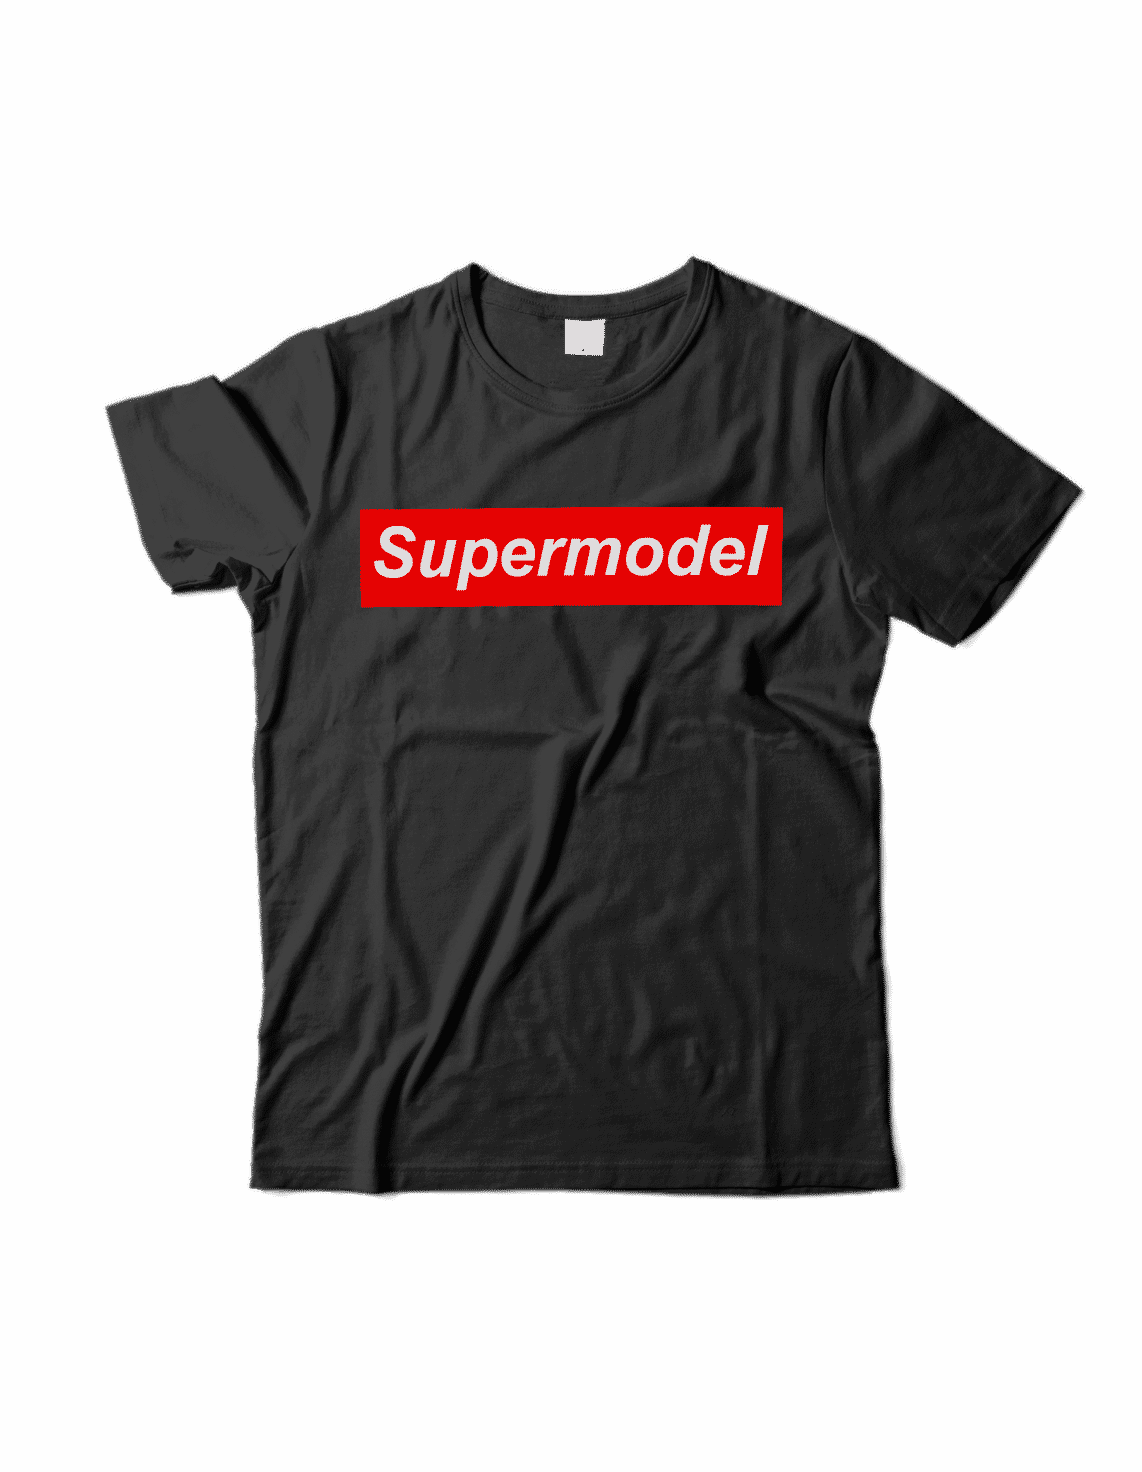 Supermodel T Shirt -Black